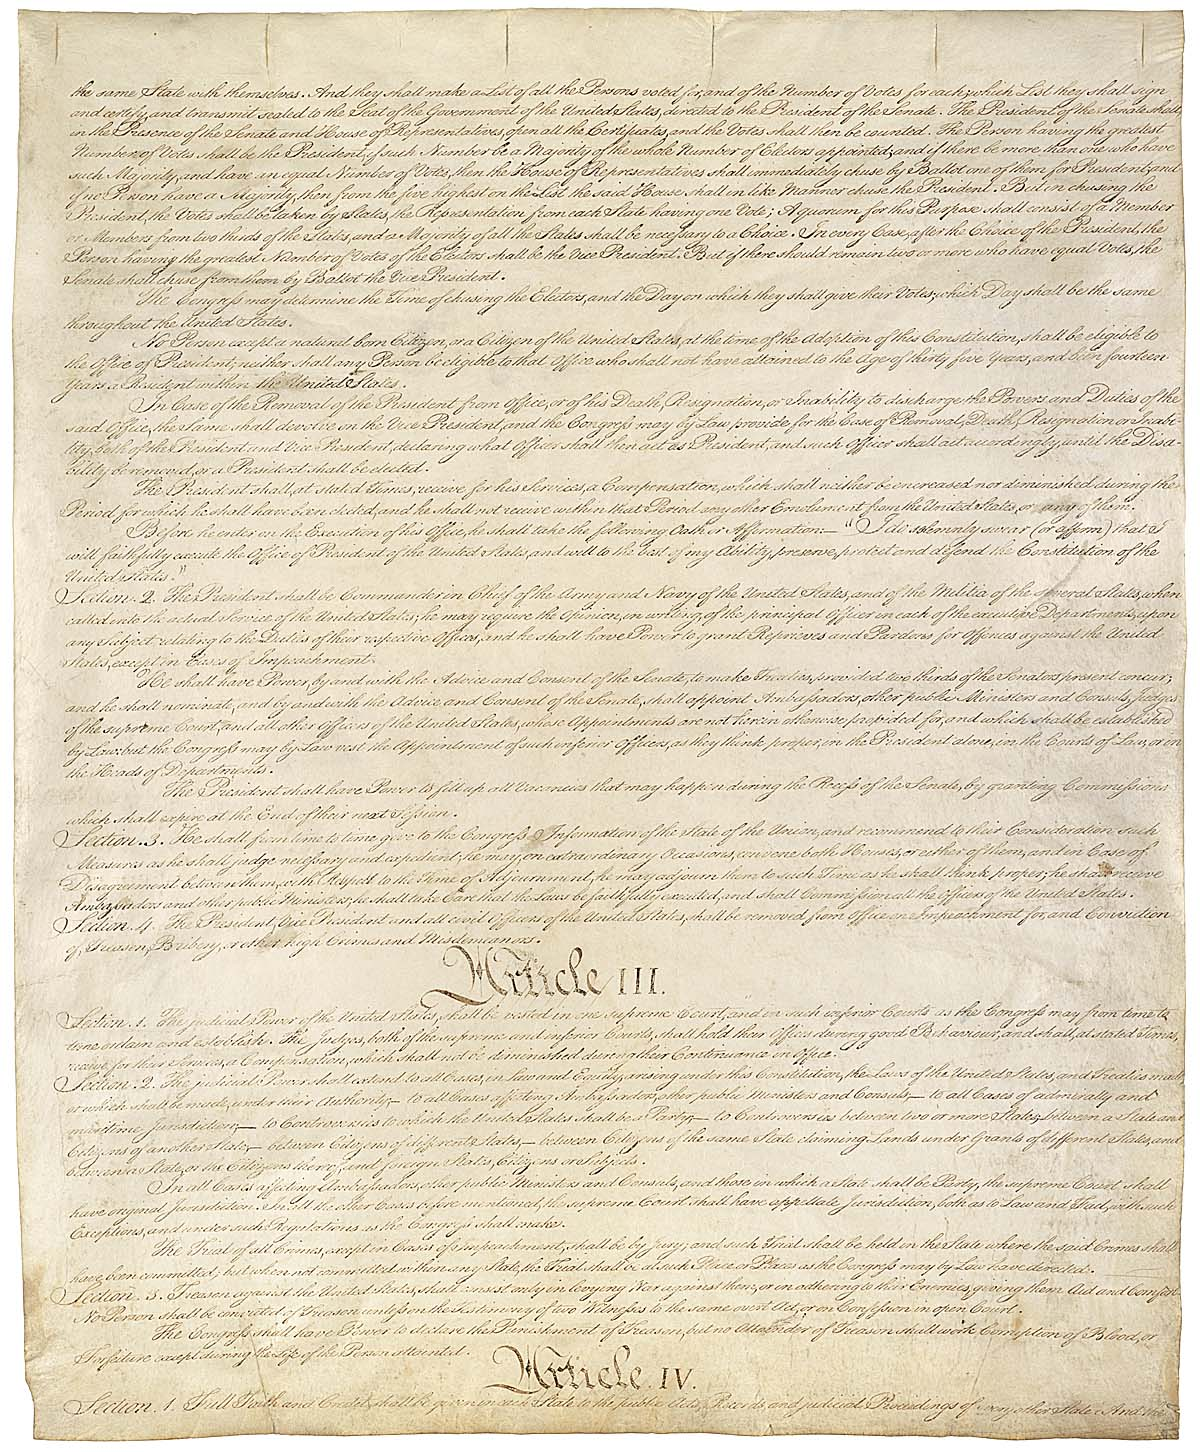 ratifying constitution essay Smith explained in his essay why it was important to ratify the constitution smith's essay pretty much explained why they should vote on ratifying the.